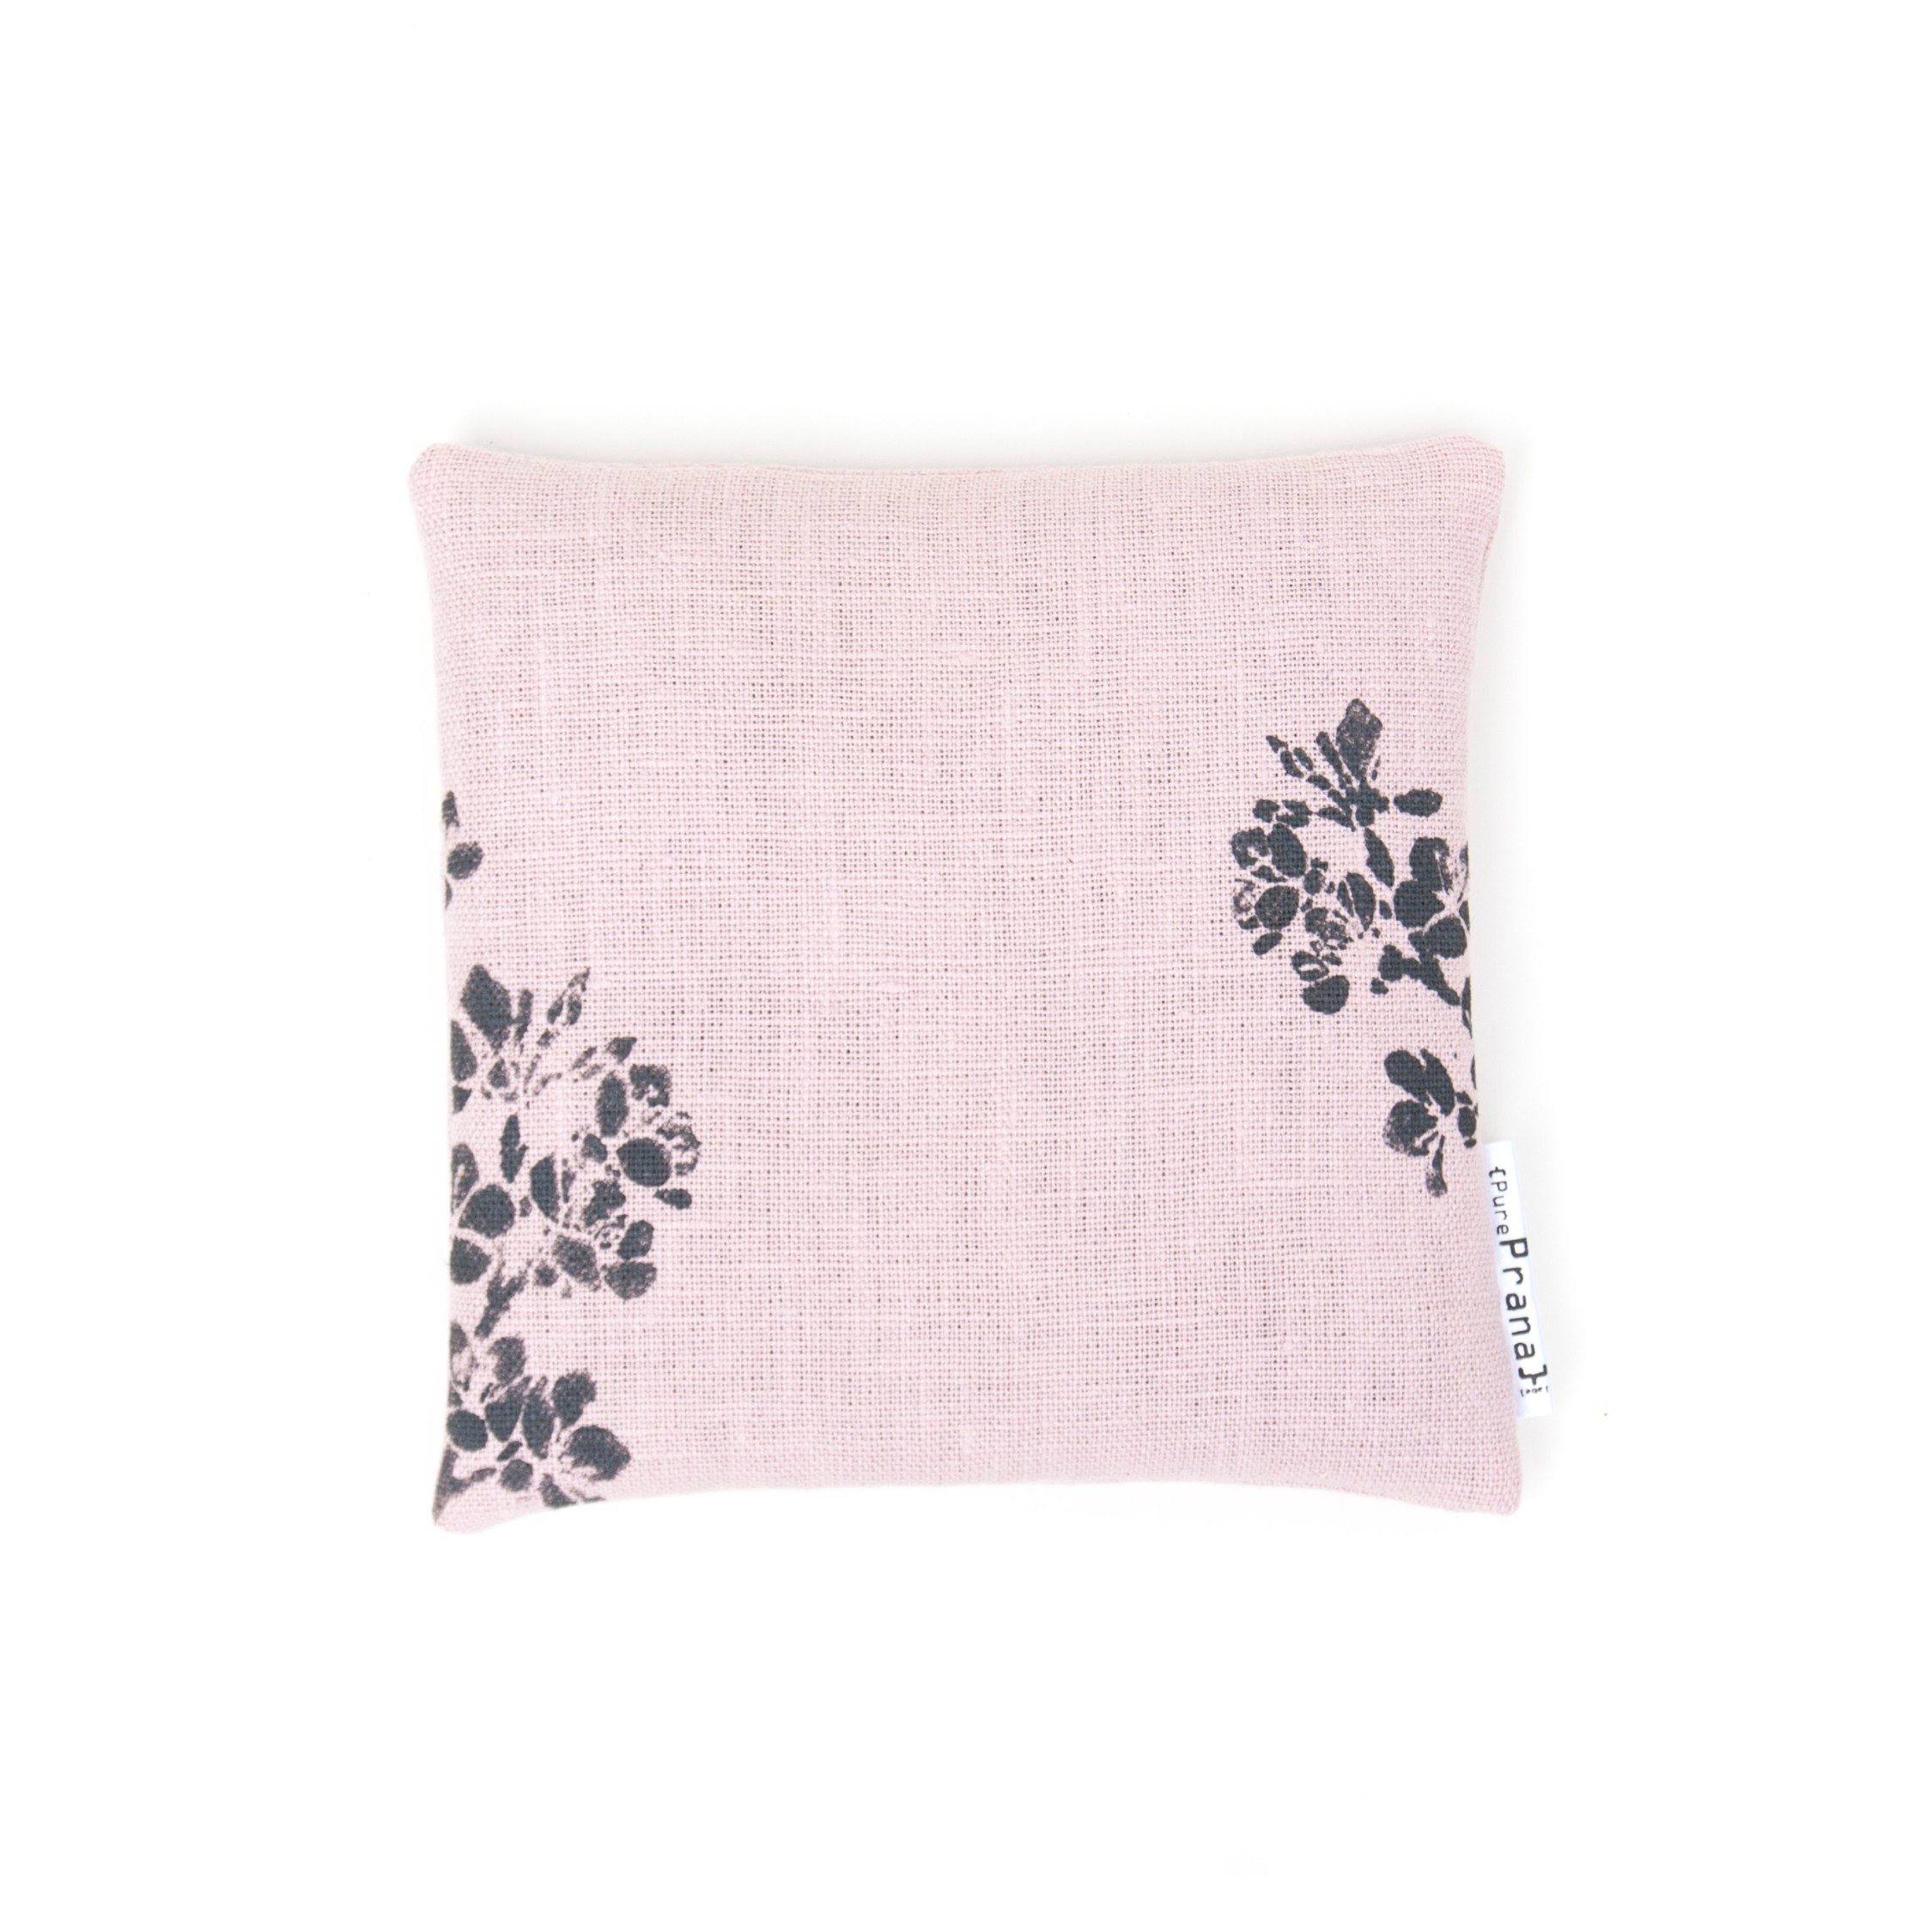 Singing bowl cushion Cherry blossom in Pink EU Linen